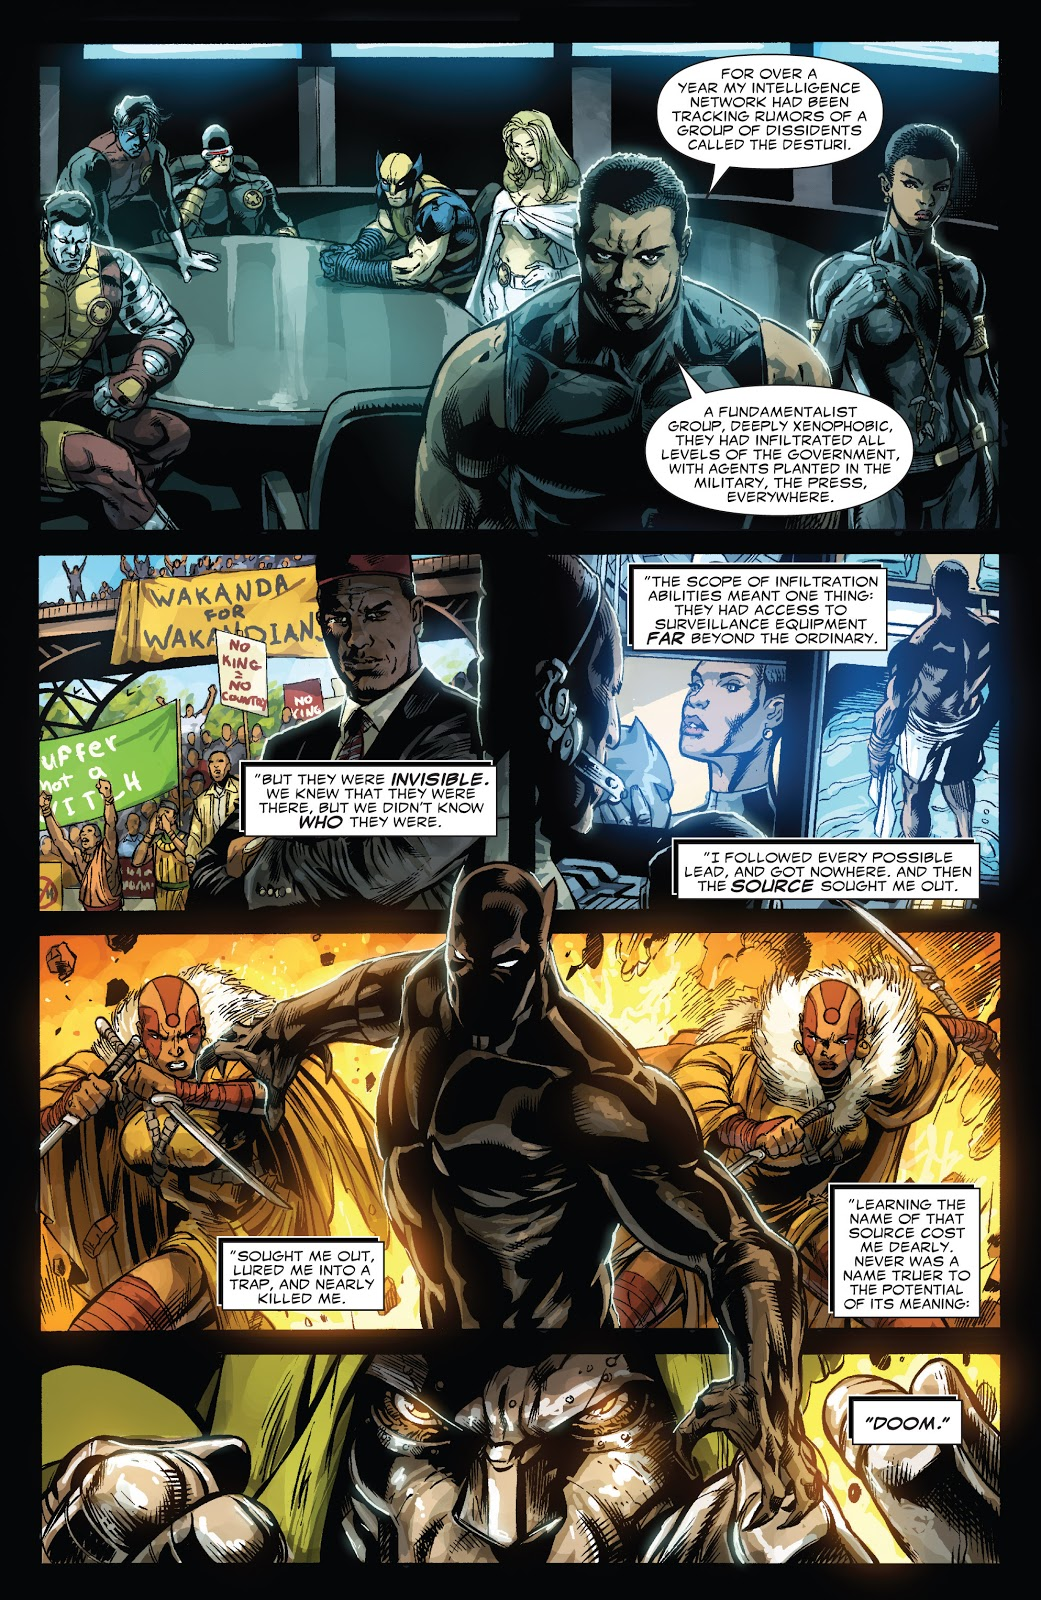 In 'Doomwar' (2010) #1, T'Challa briefs the X-Men on the Desturi coup d'etat in Wakanda and Doctor Doom its mastermind.